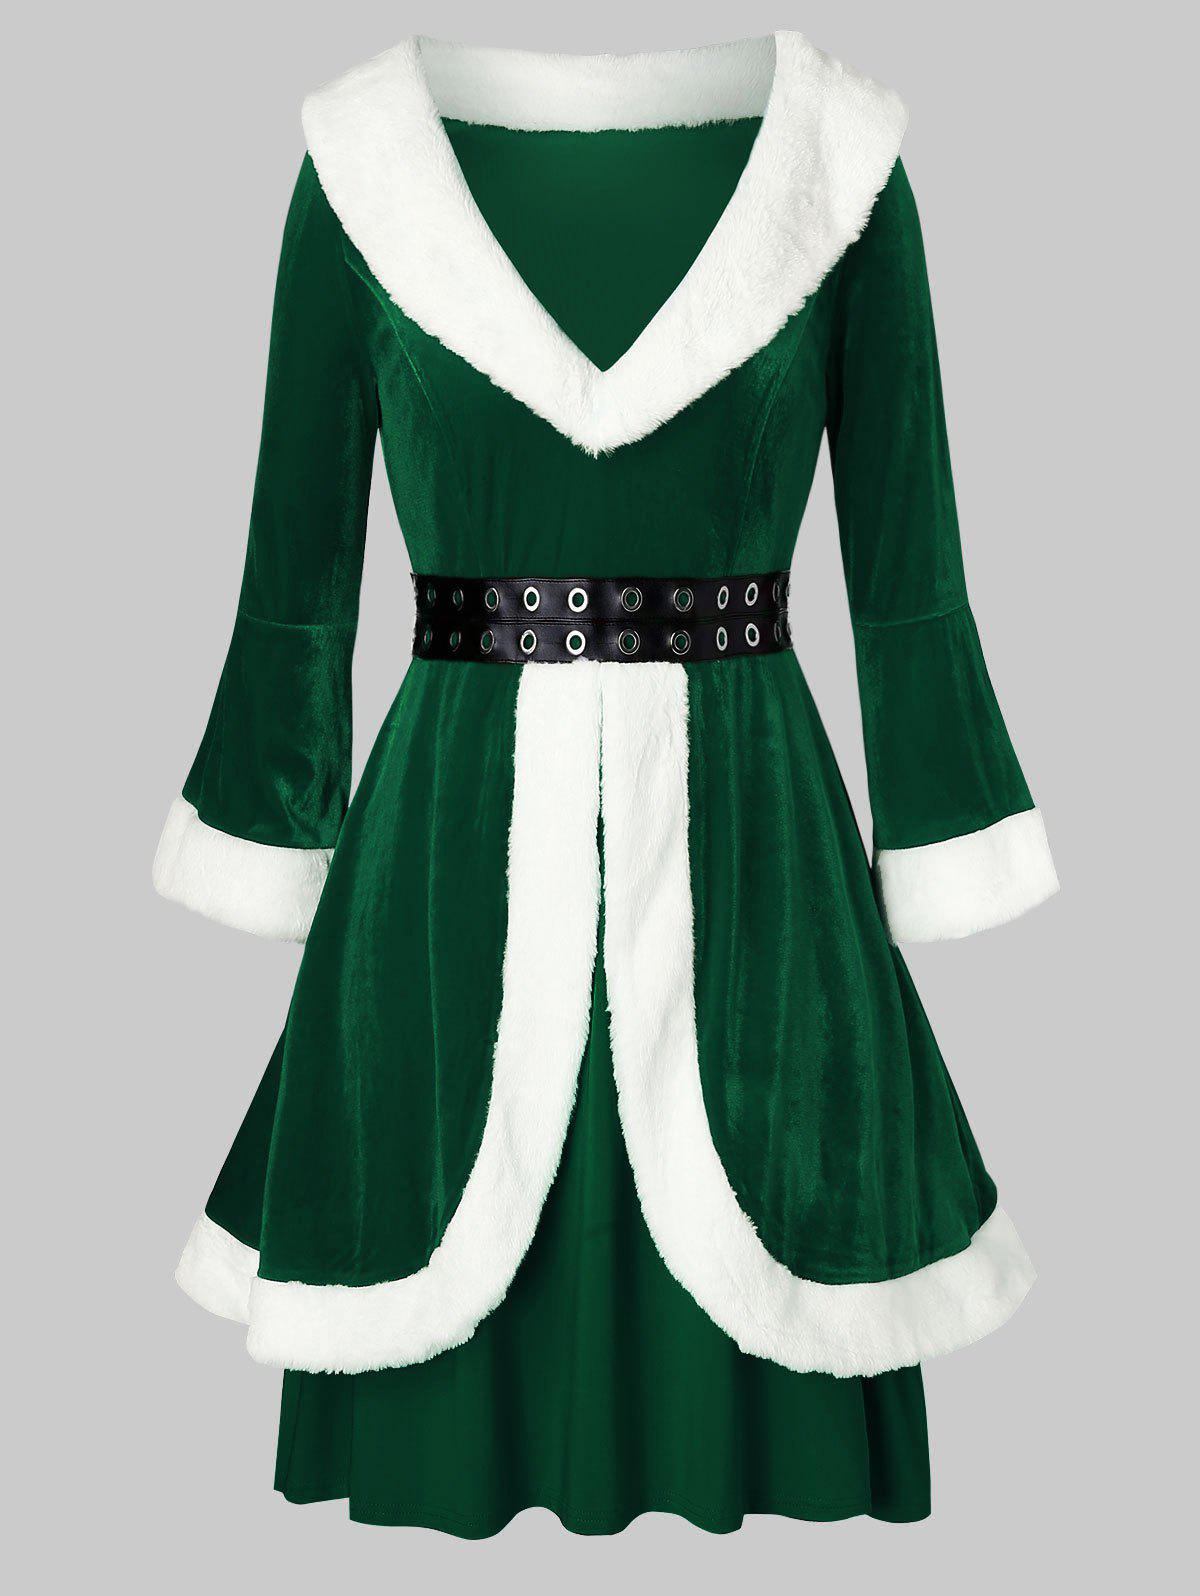 Plus Size Faux Fur Grommets Velvet Christmas Dress - MEDIUM SEA GREEN 4X